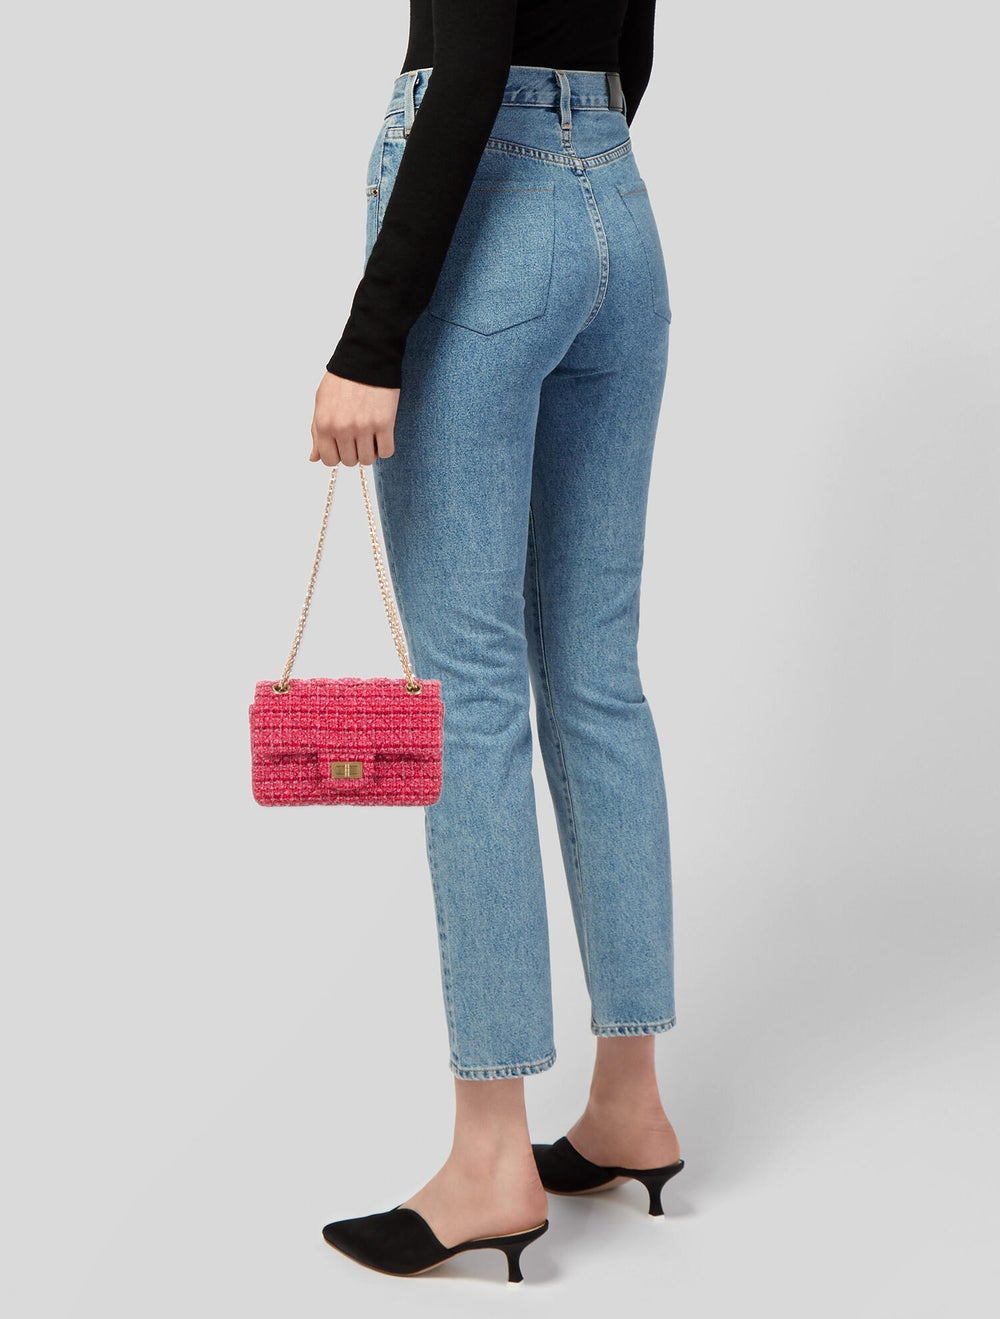 Chanel Tweed Reissue Mini Flap Bag Red - image 2